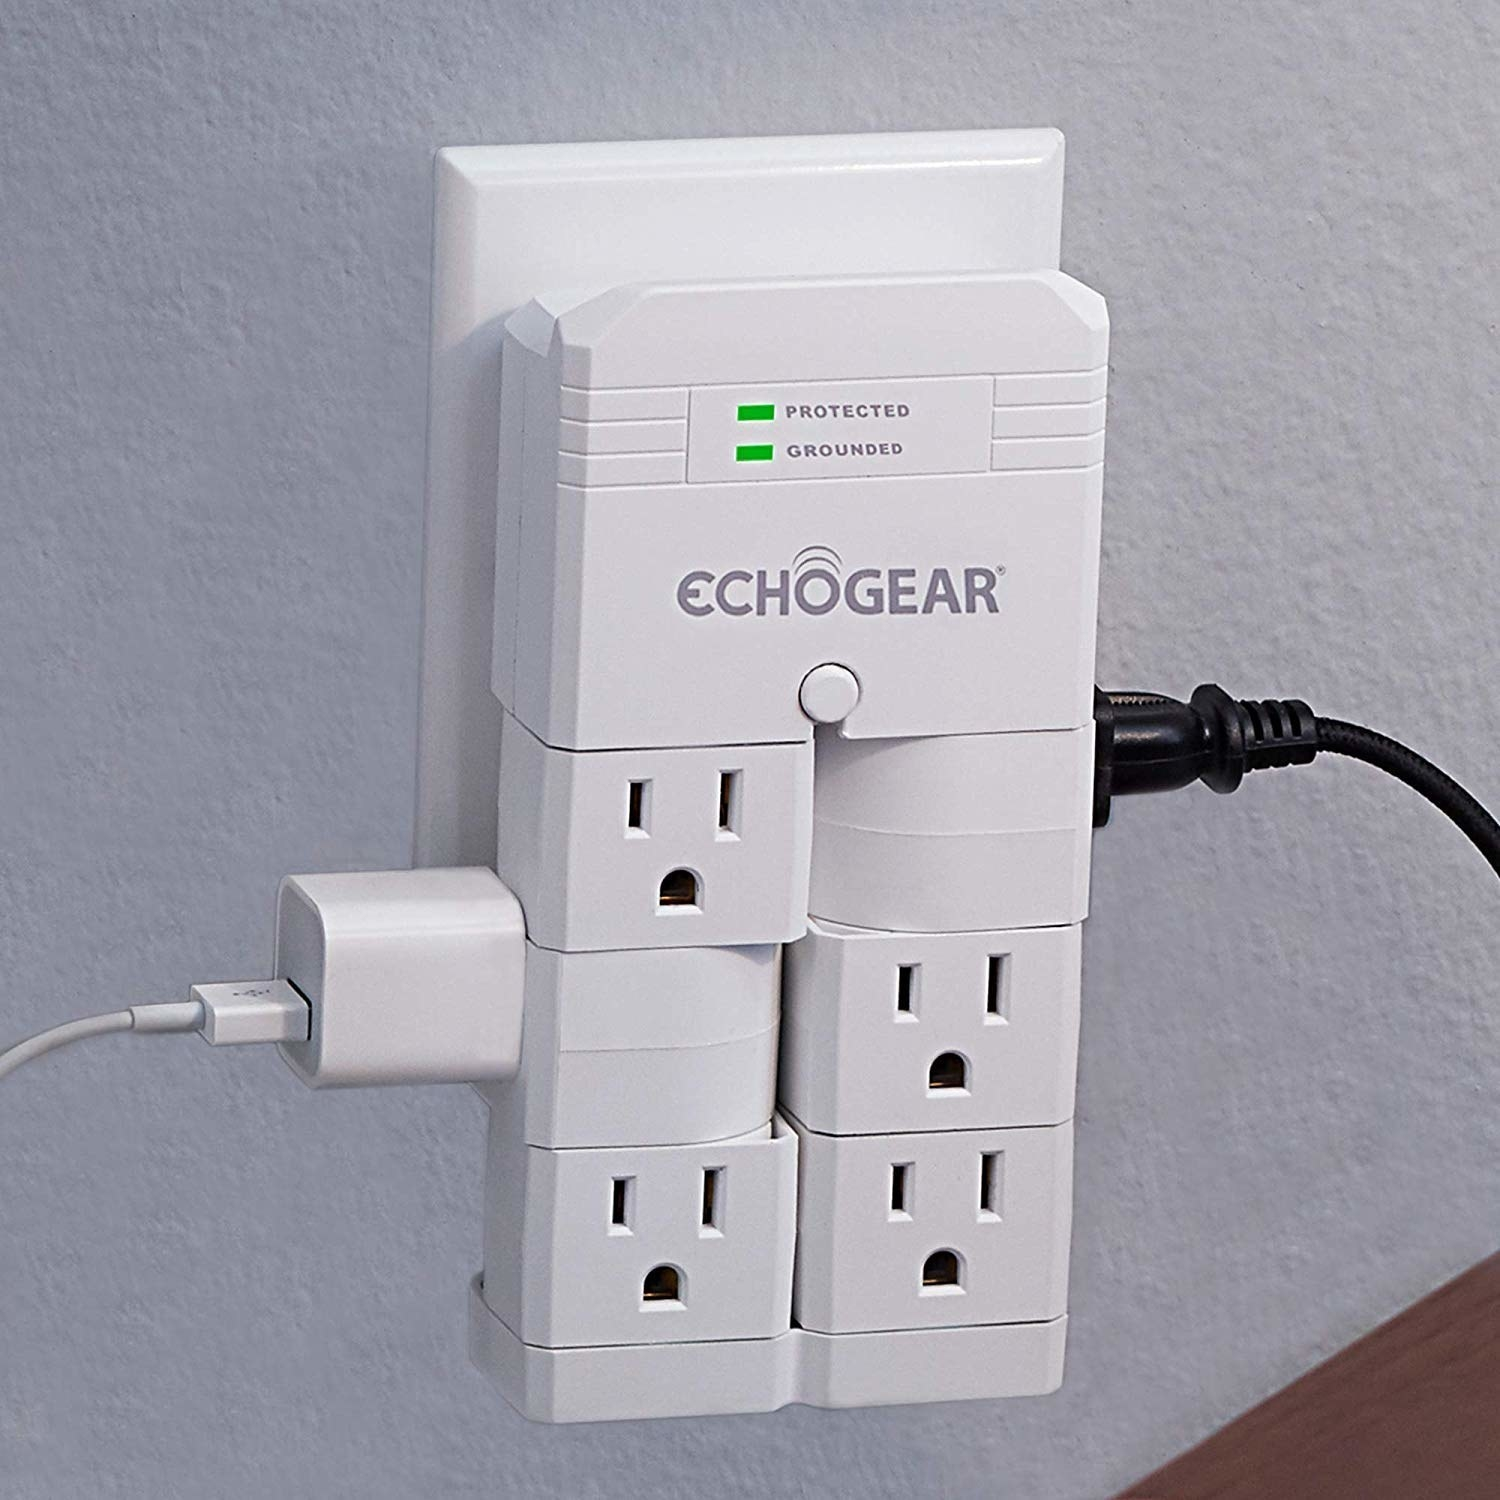 the surge protector with two plugs inserted and four empty sockets remaining